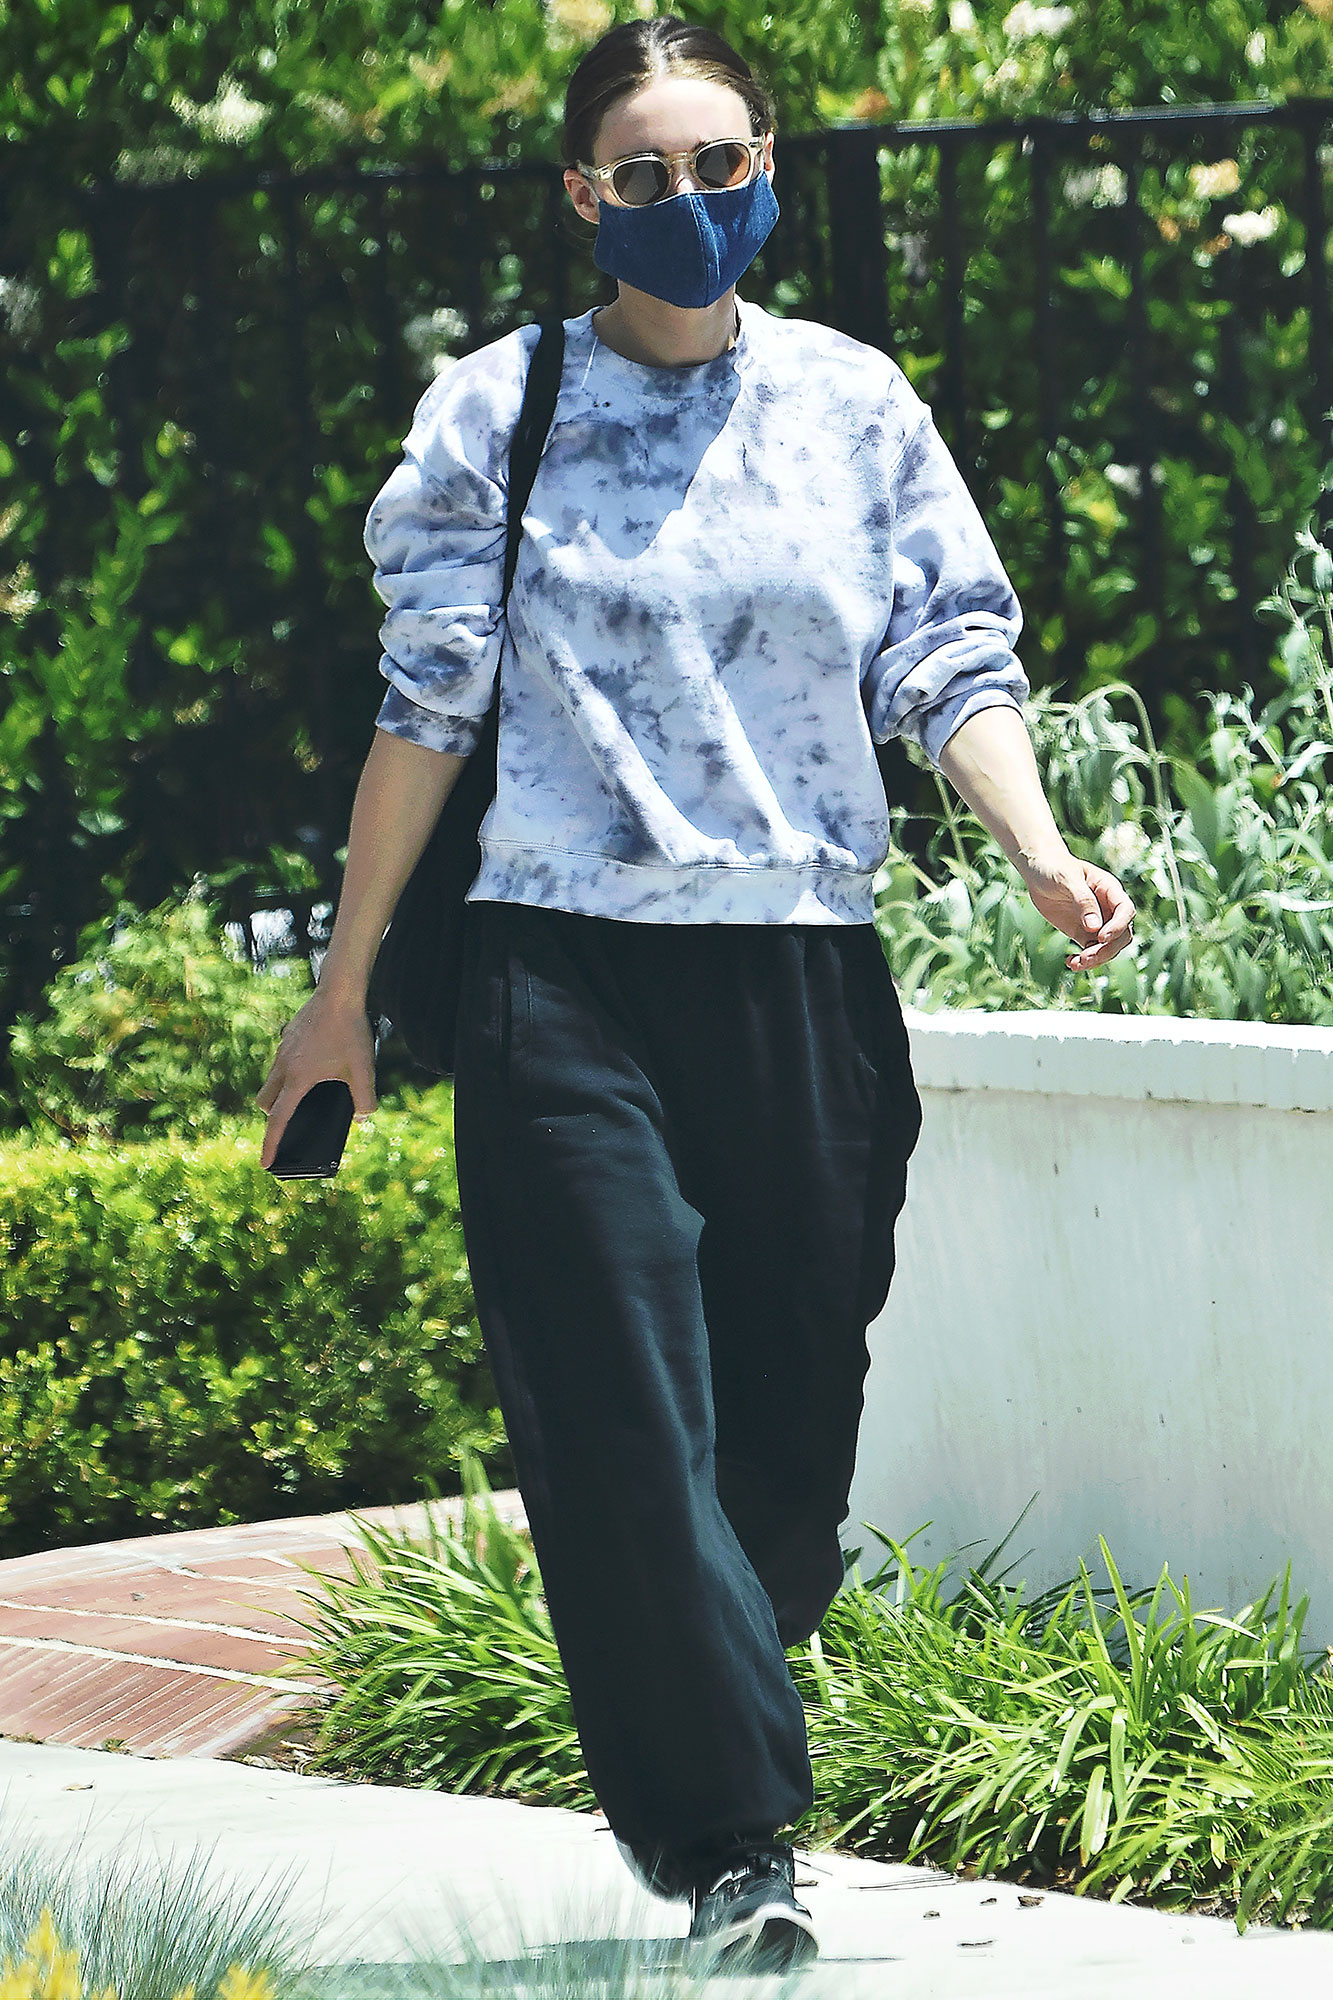 Actress Rooney Mara out and about in Los Angeles